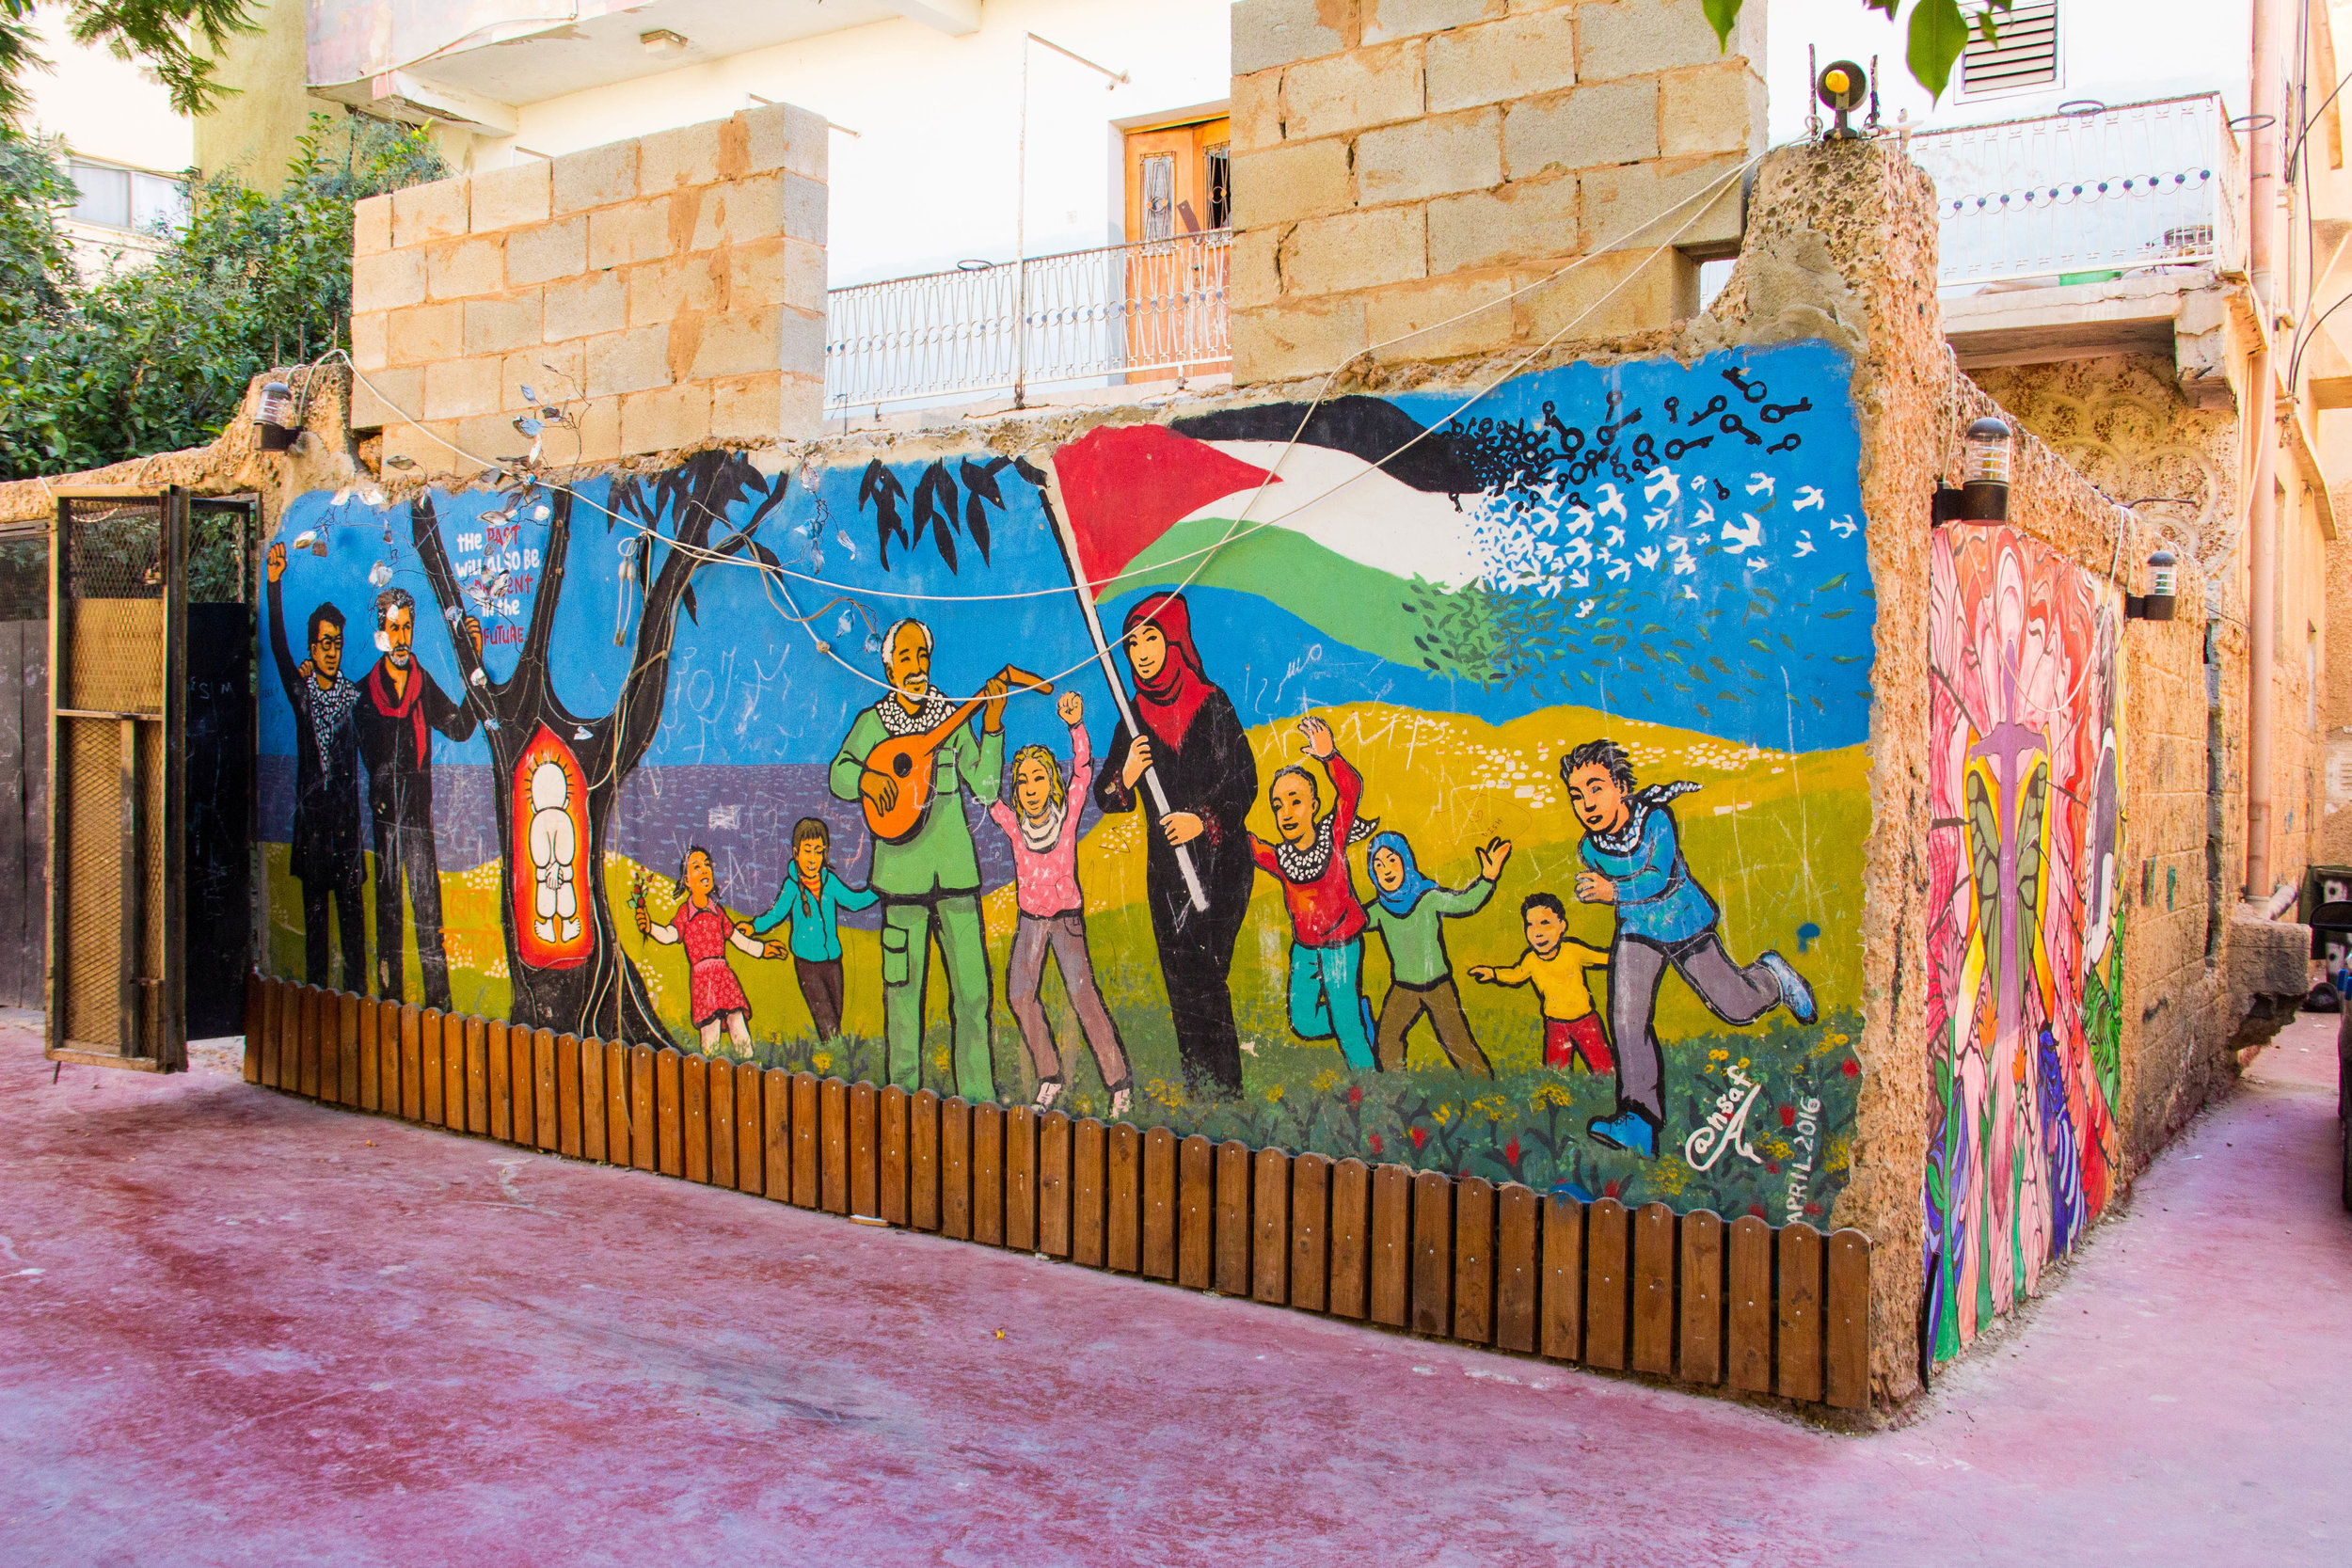 Outside of the Freedom Theatre in Jenin